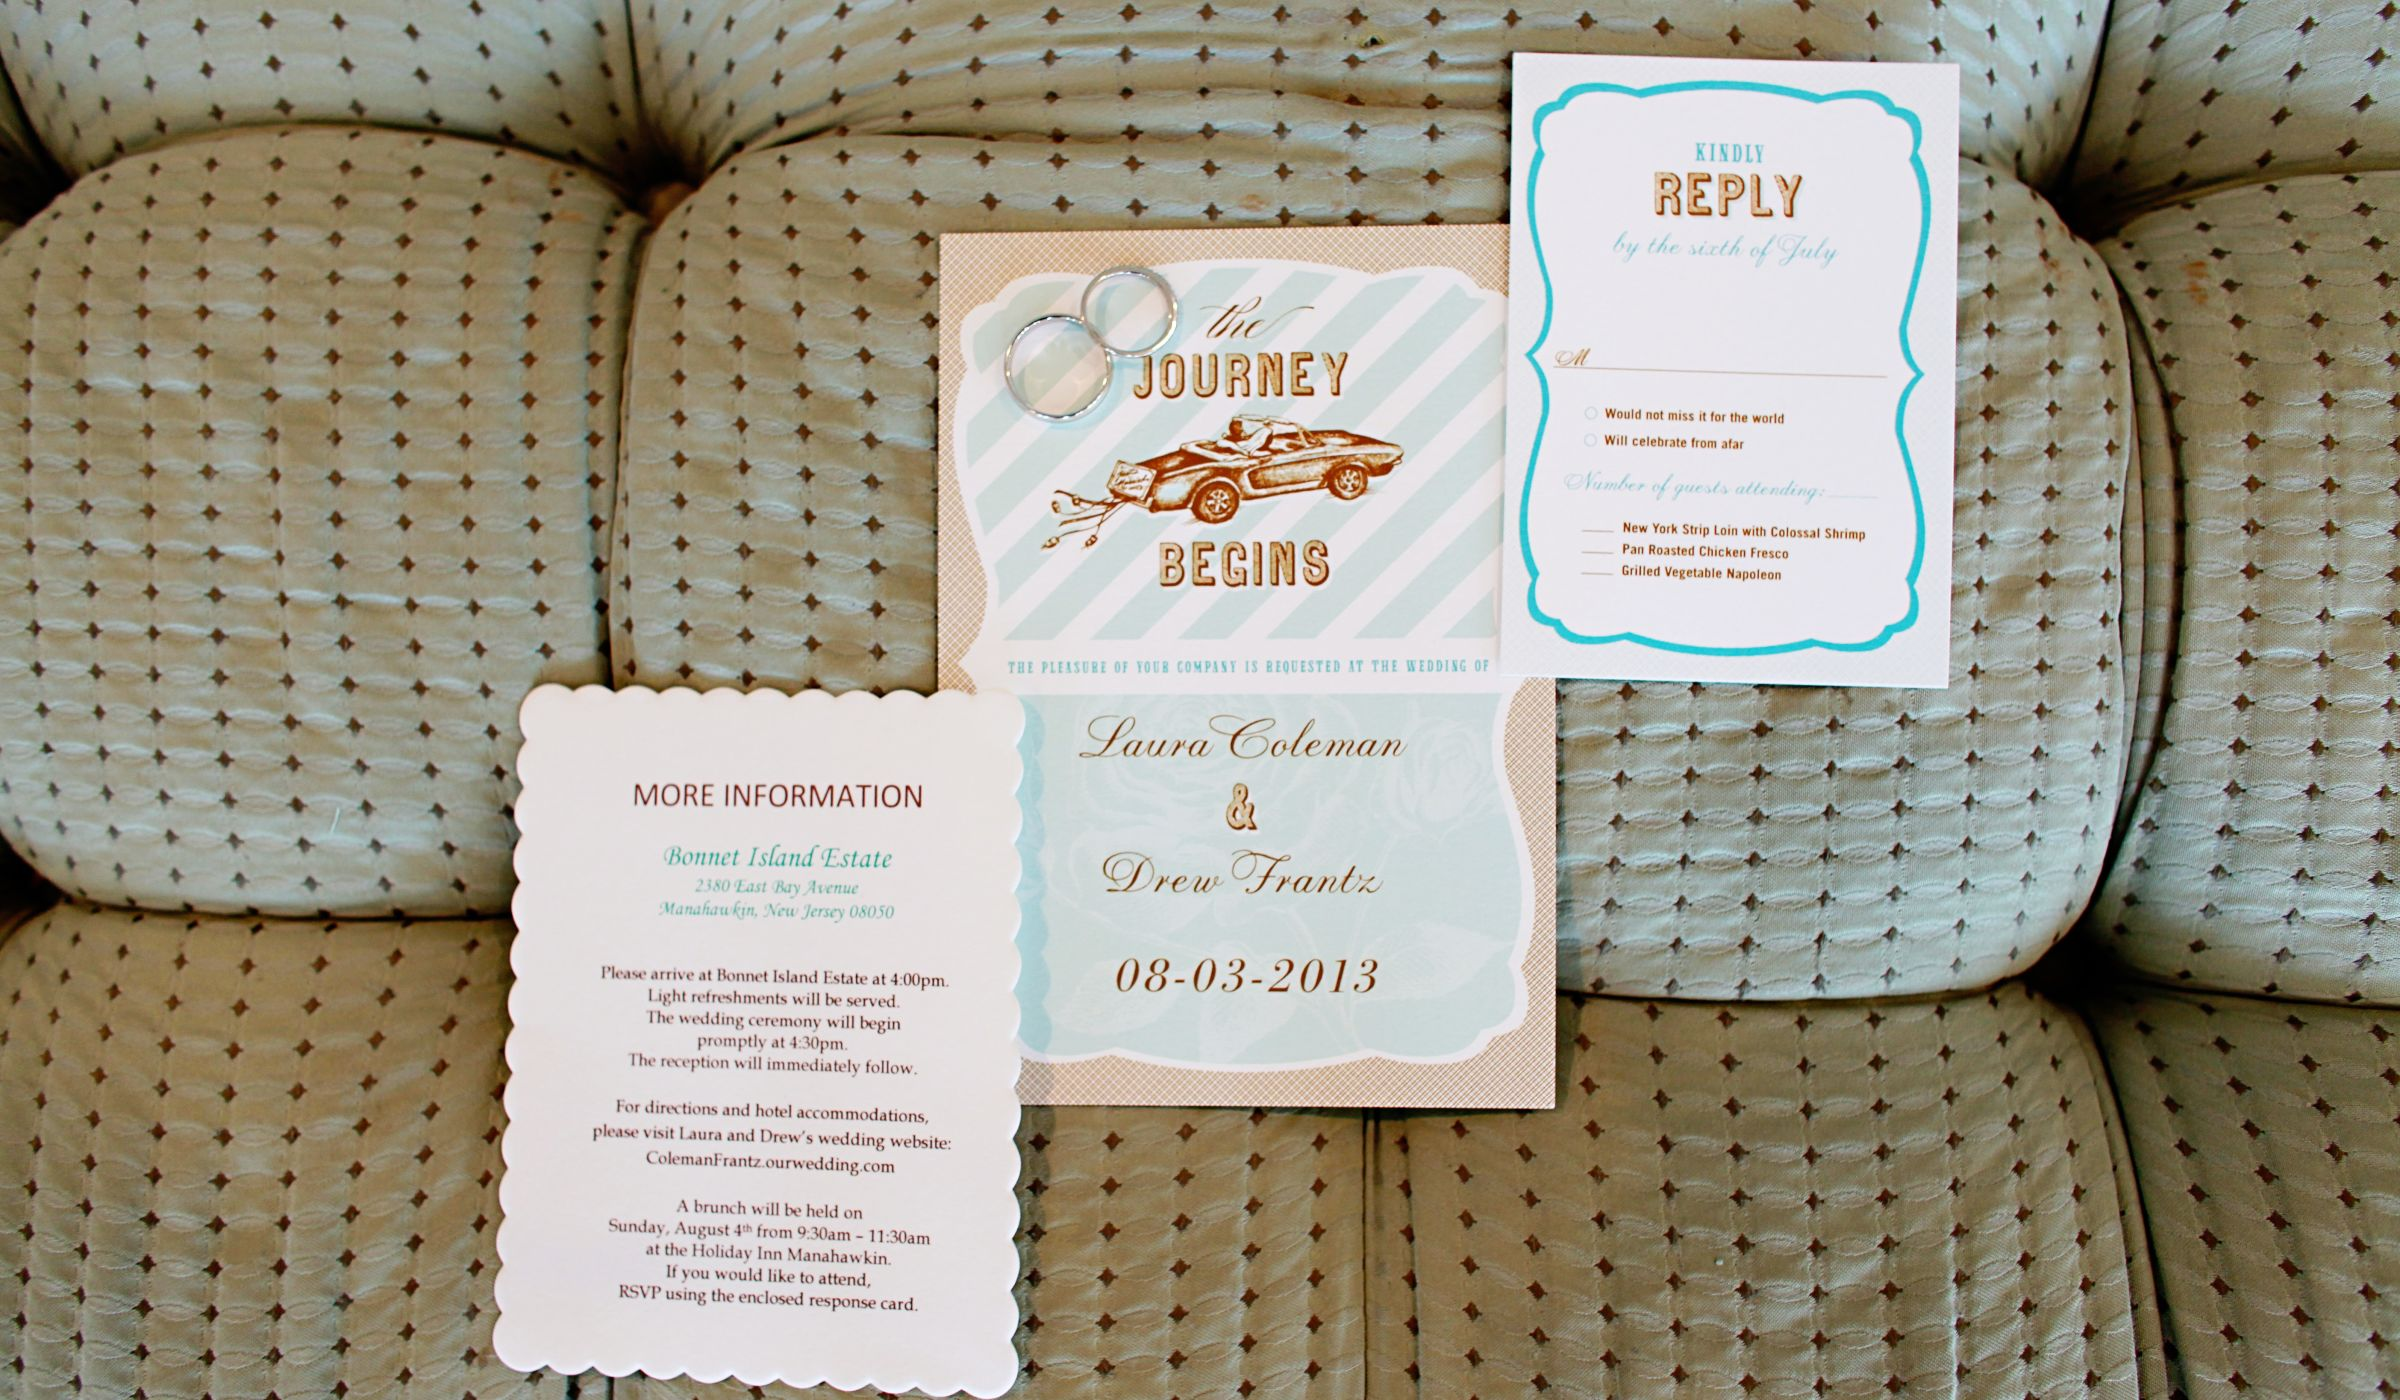 Rehearsal dinner invitation etiquette weddingwire monicamarmolfo Image collections